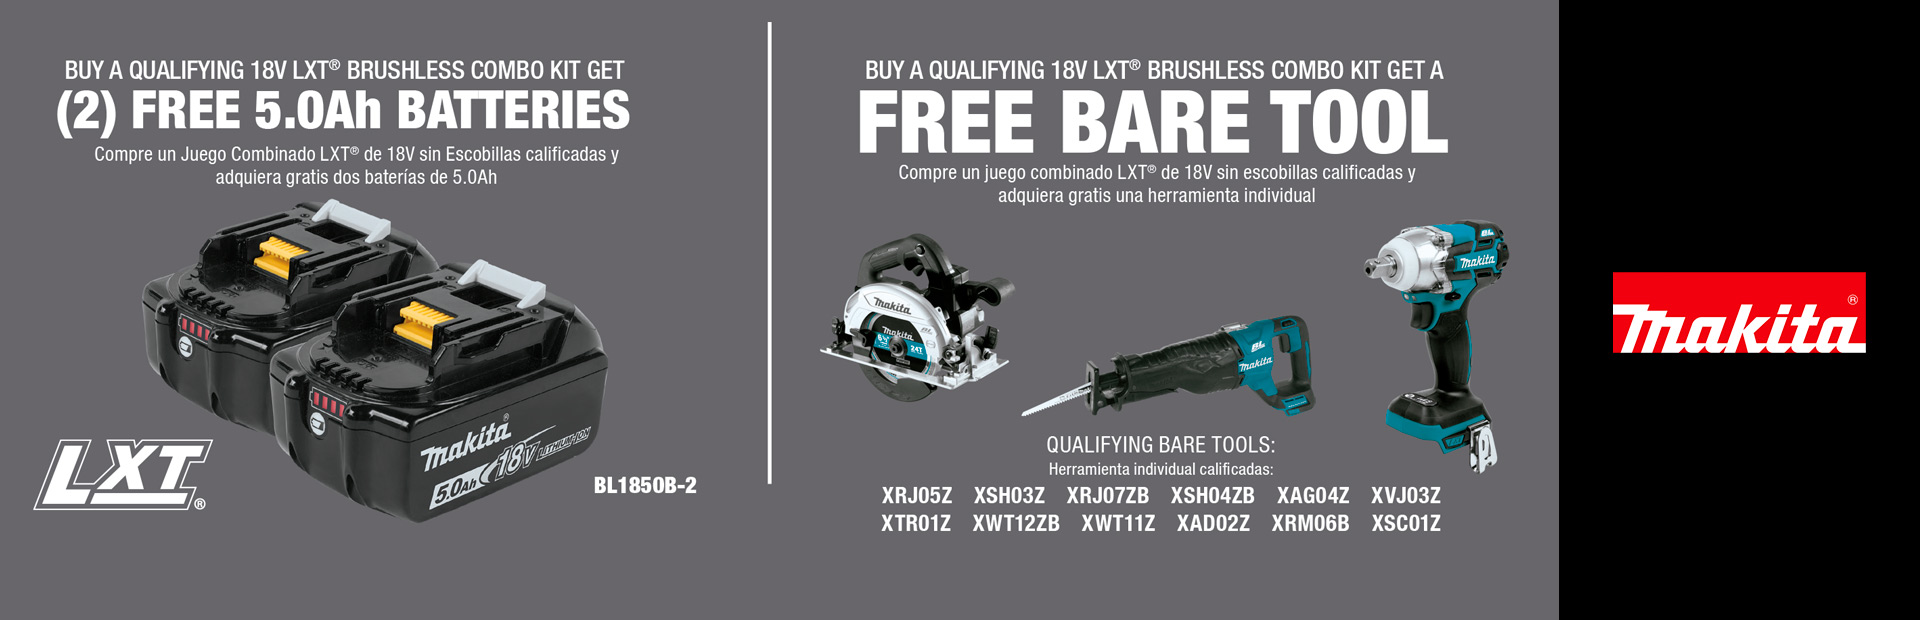 Makita: BUY A QUALIFYING 18V LXT® BRUSHLESS COMBO KIT AND